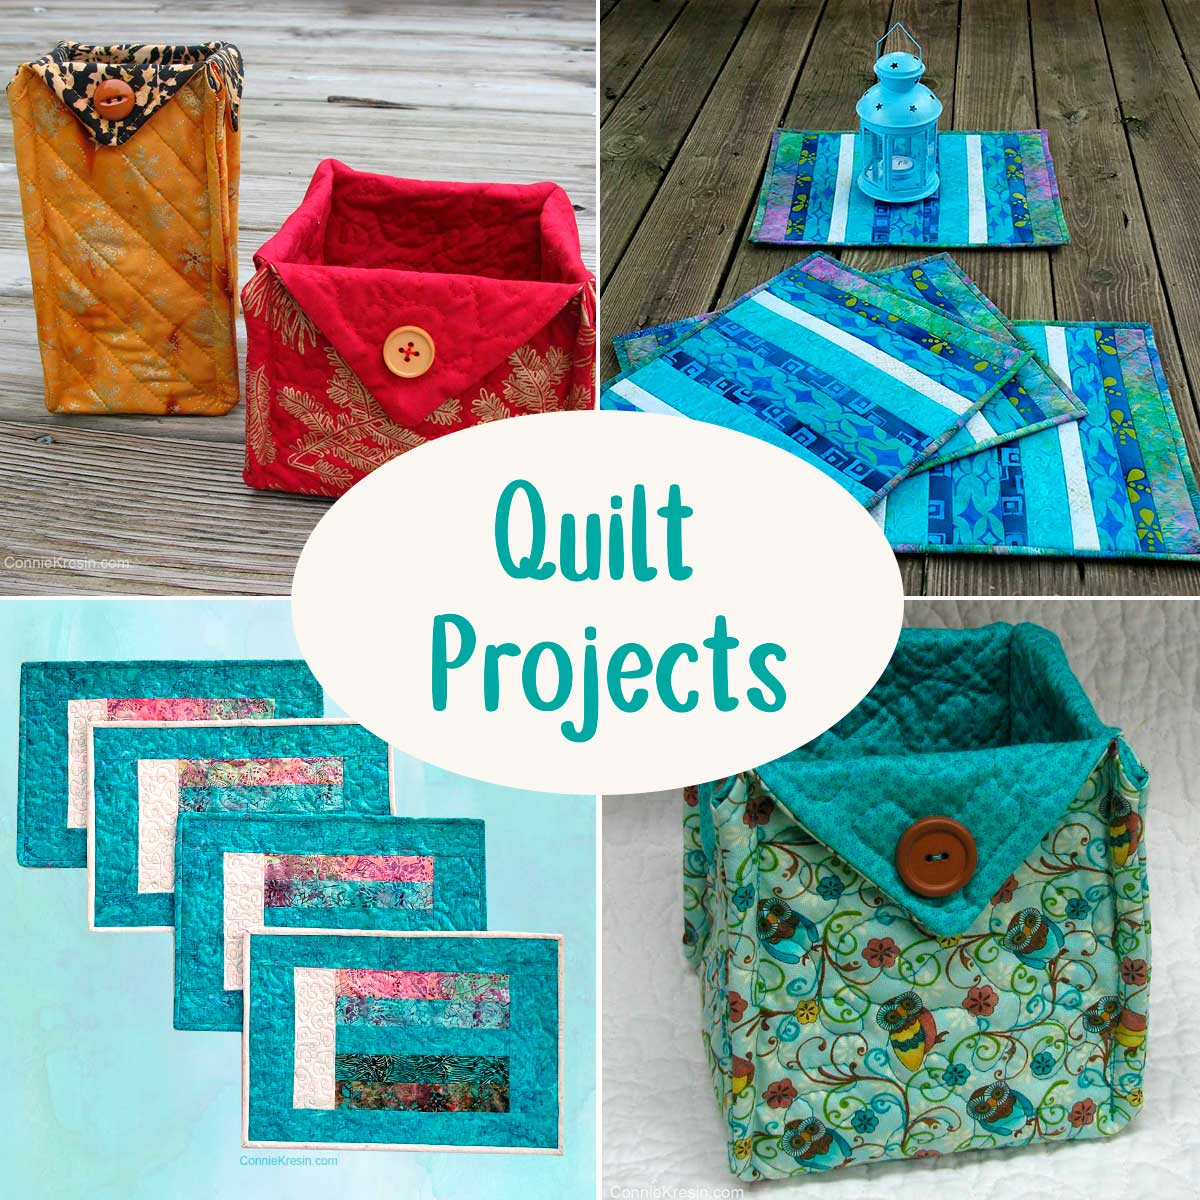 Category of quilt projects